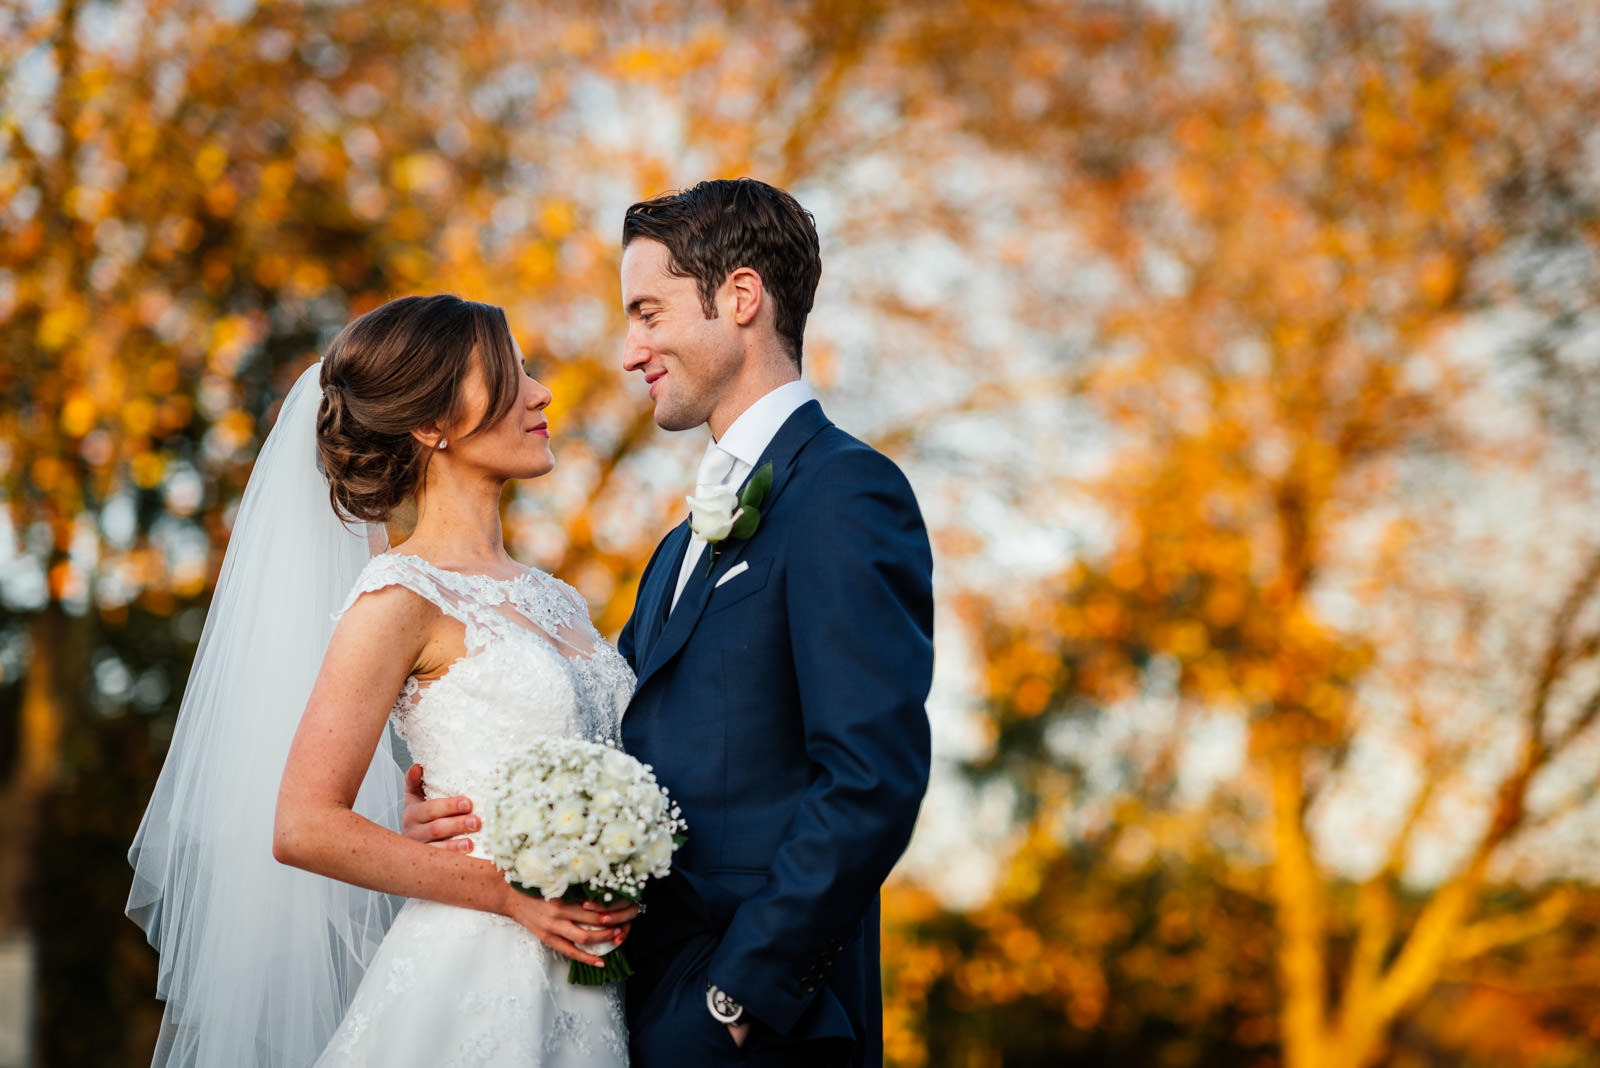 Autumn Bride & Groom portrait